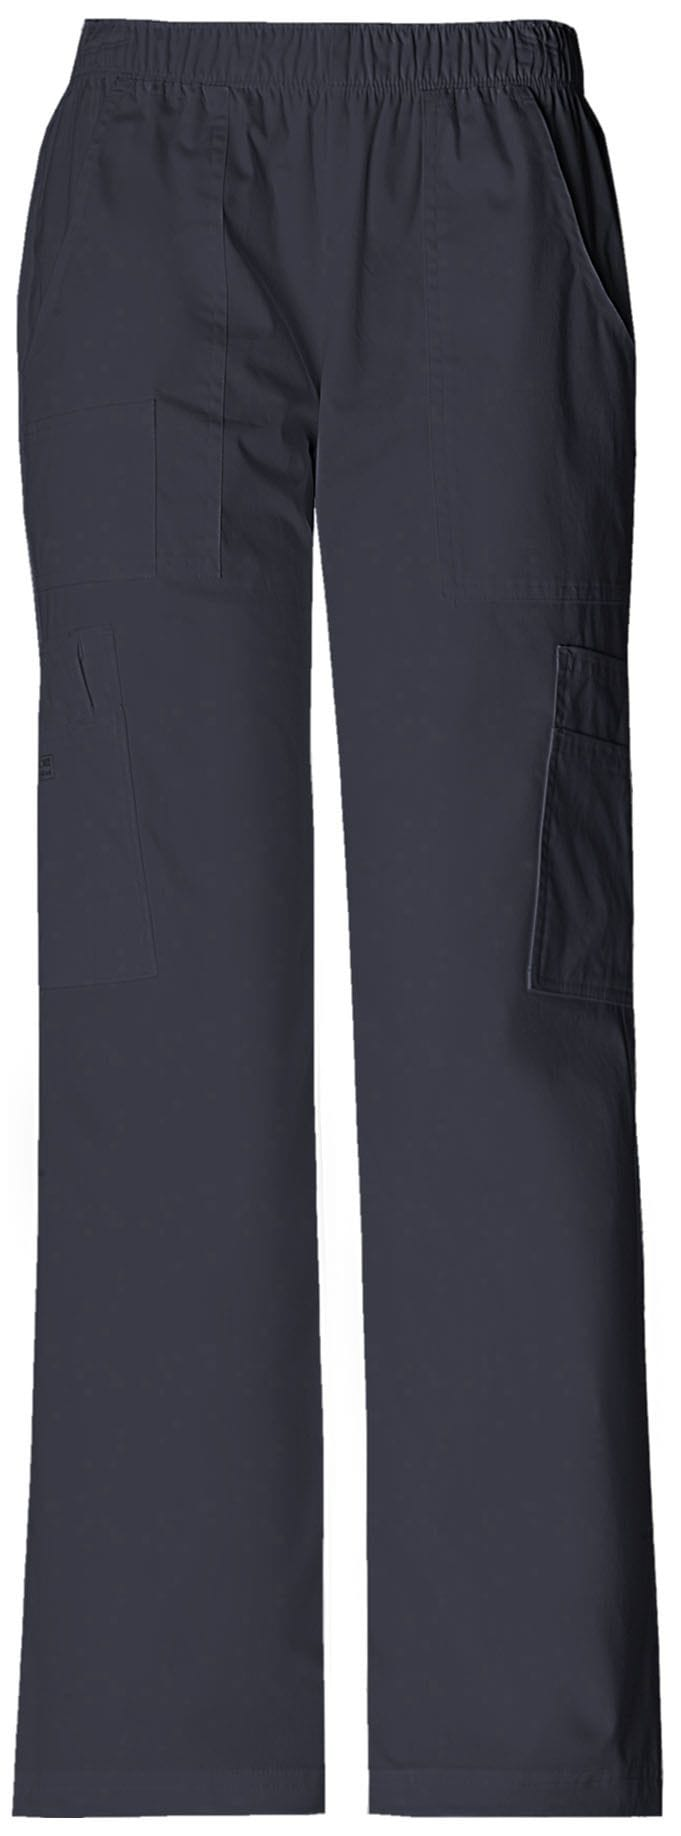 4005 PWTW Pewter Pull-on Cargo Pant Special